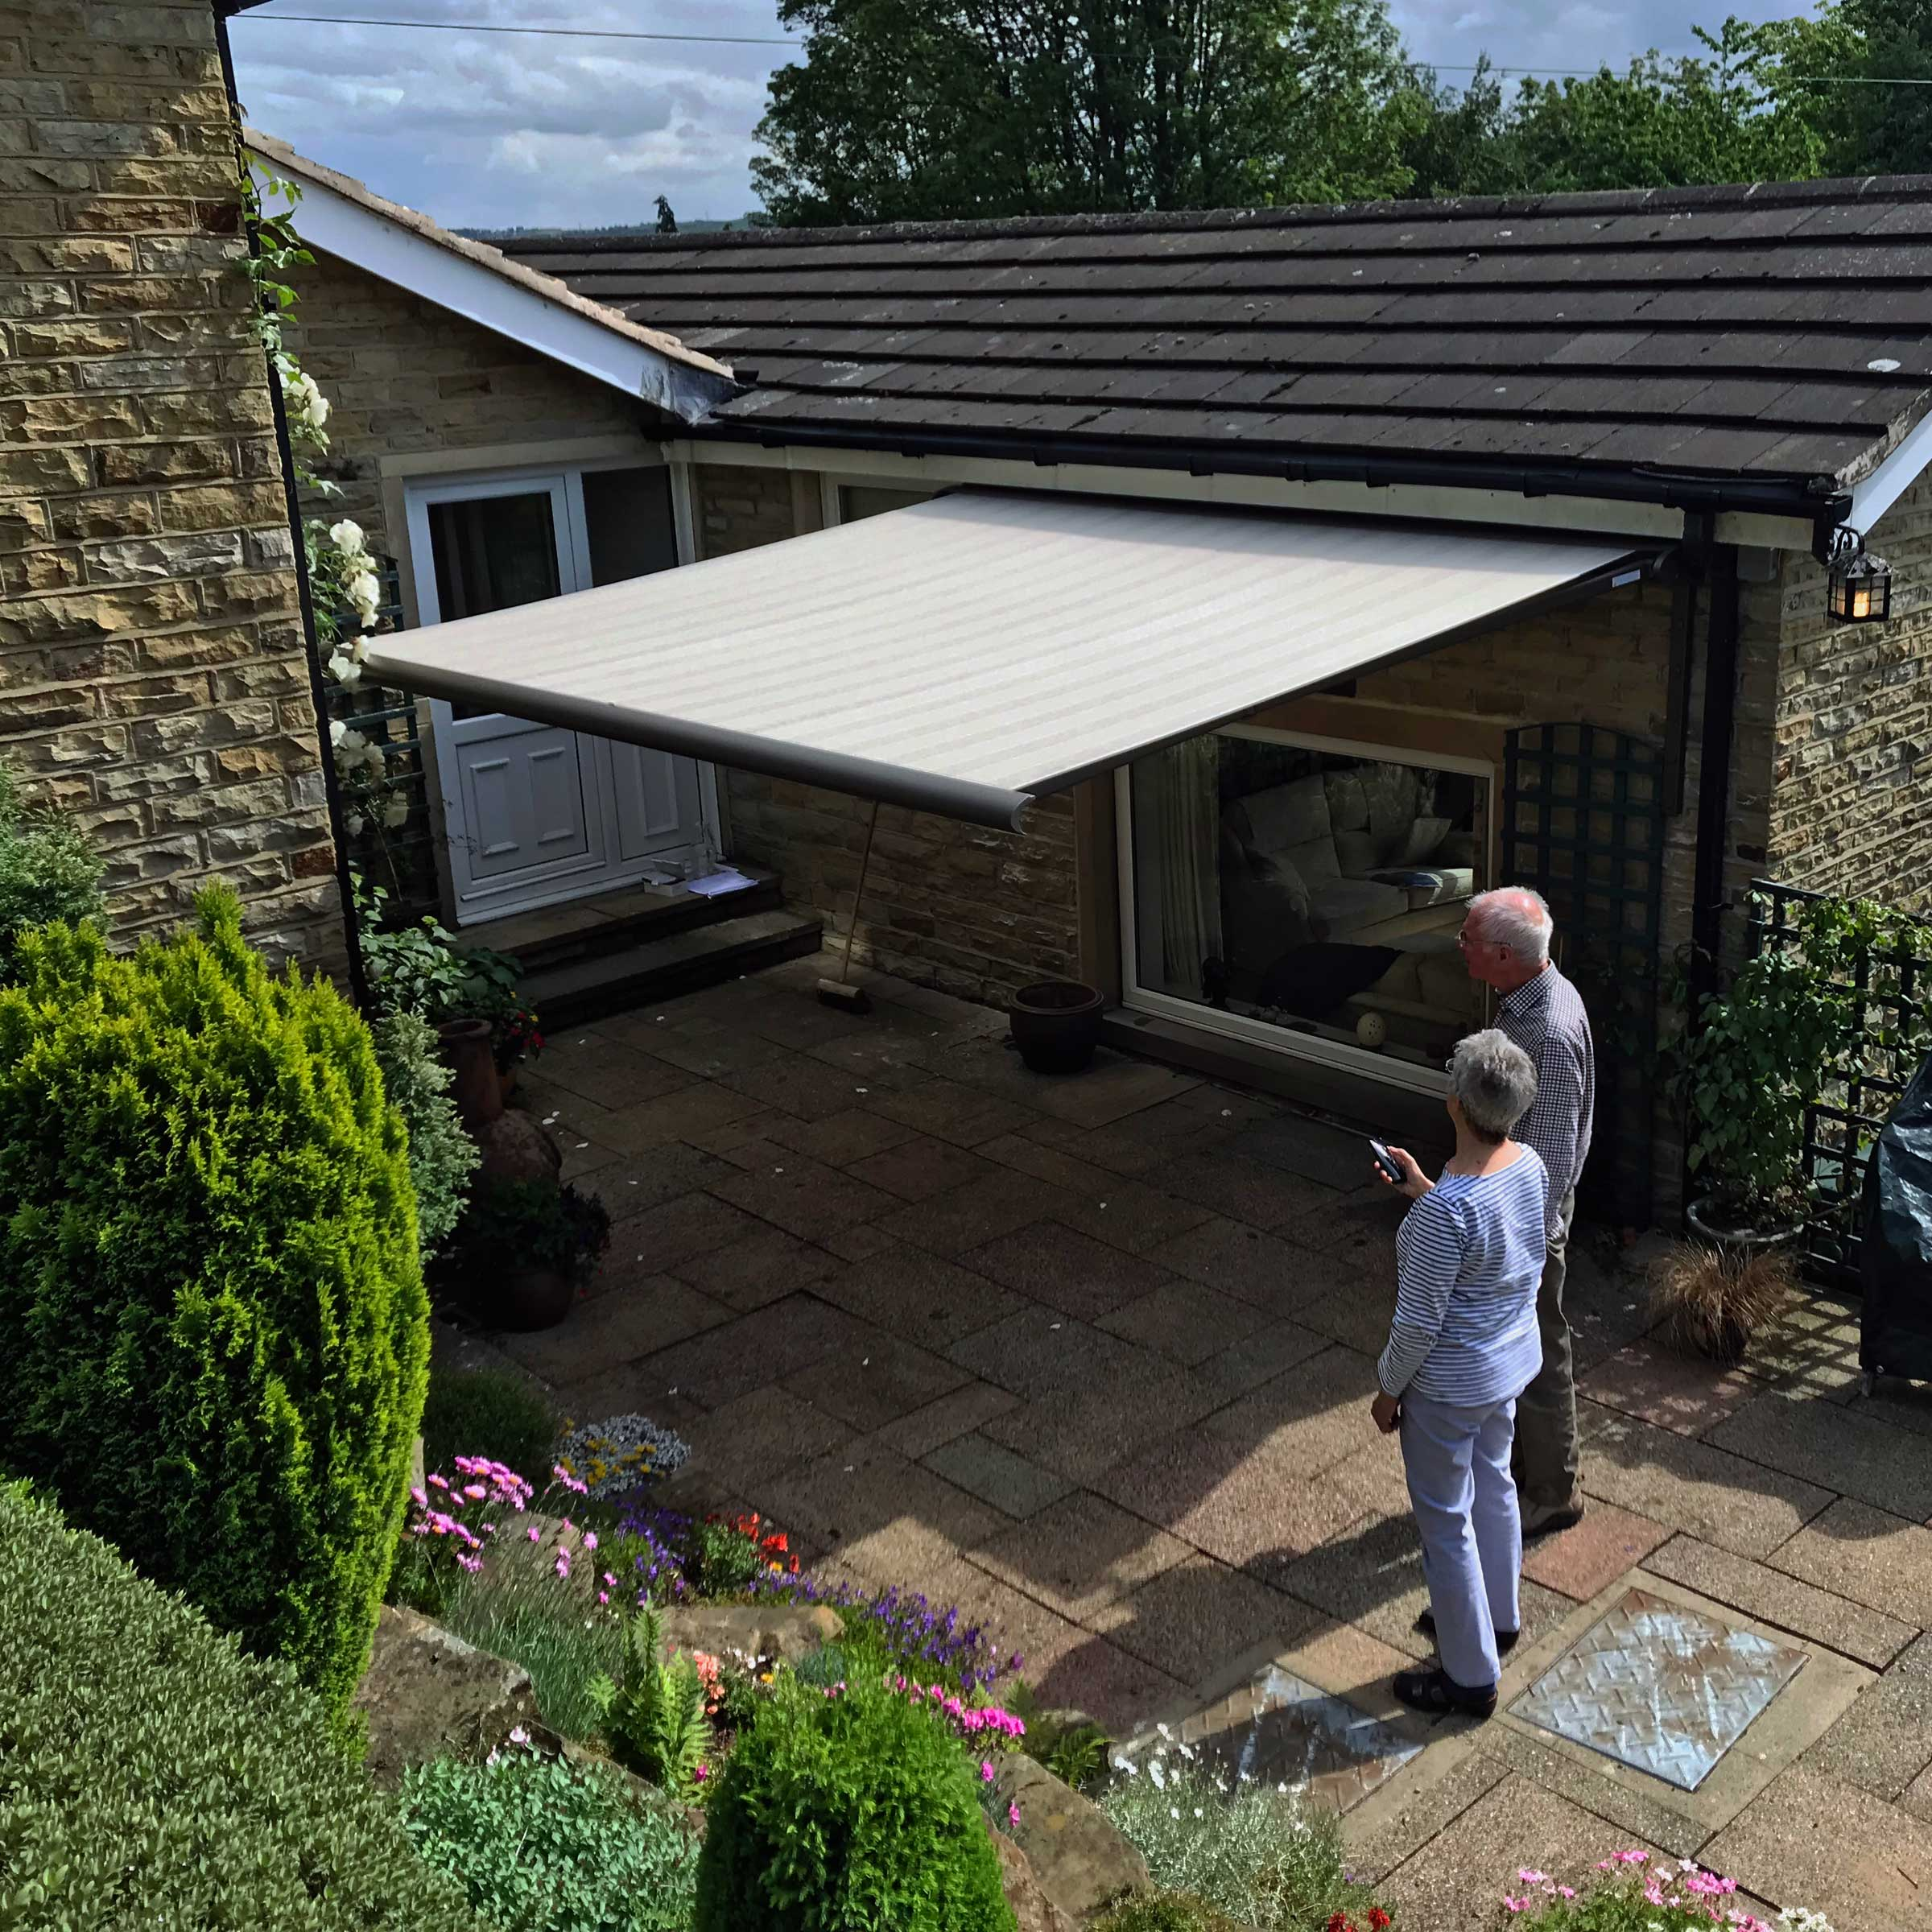 A couple operating their awning via the remote control